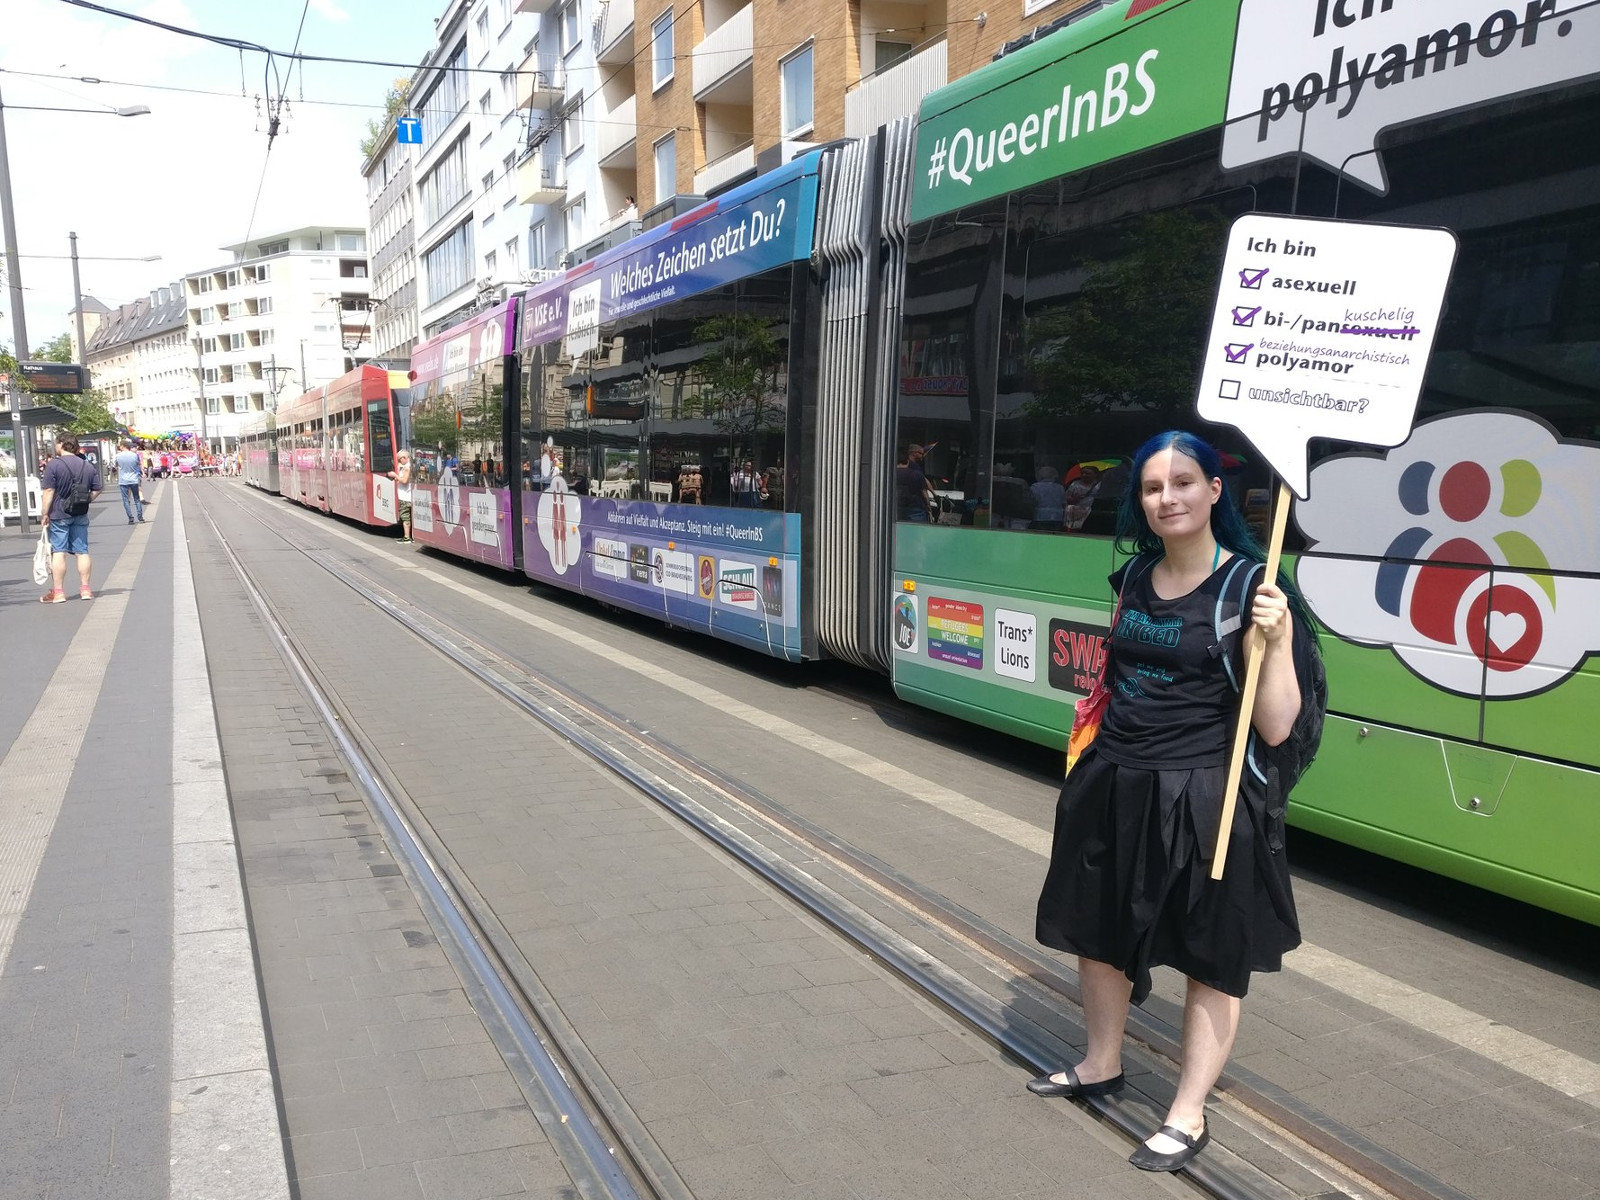 photo of me standing in front of the rainbow tram with my sign